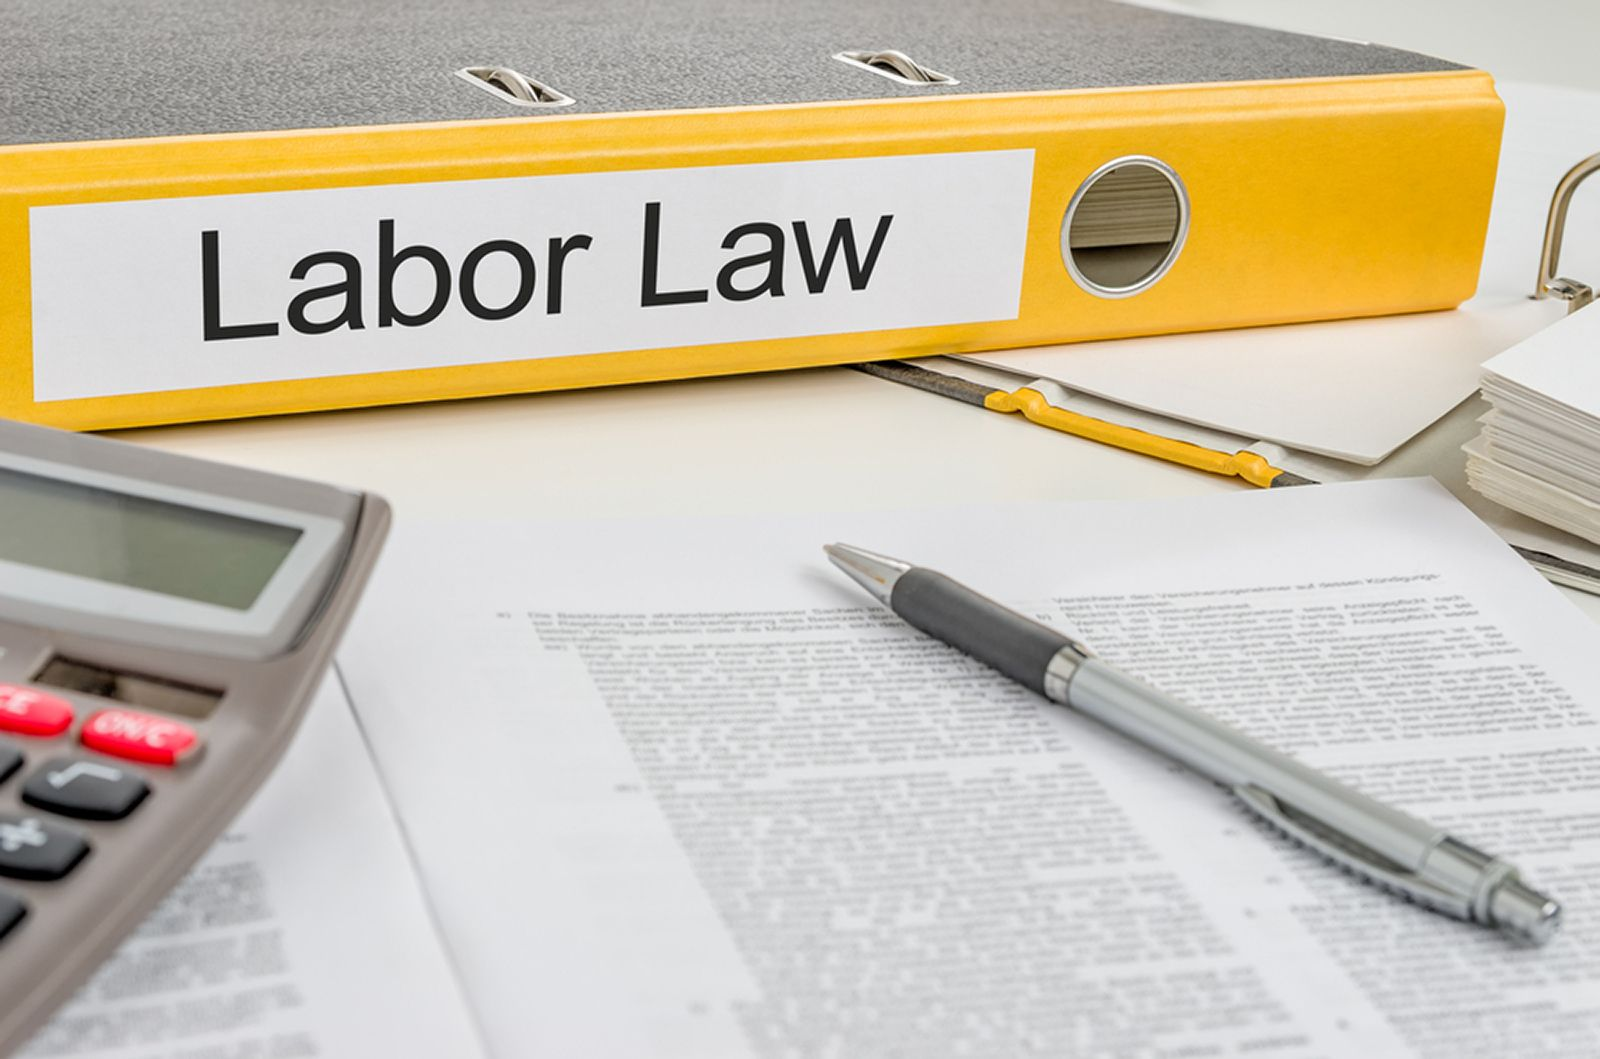 A binder on labor law issues